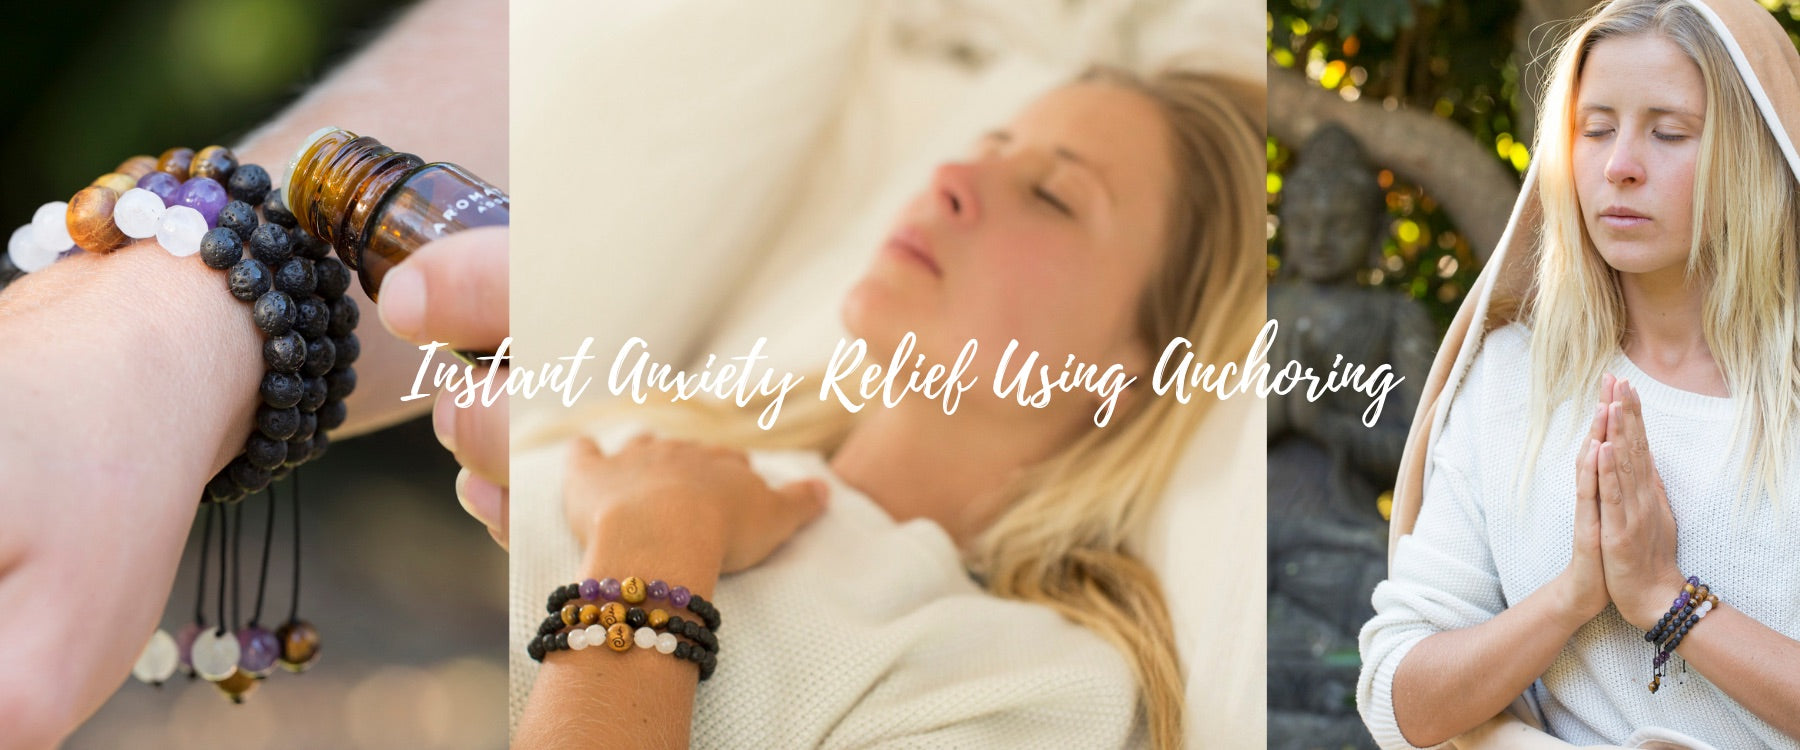 Anxiety Relief Using Anchoring & Anxiety Bracelets